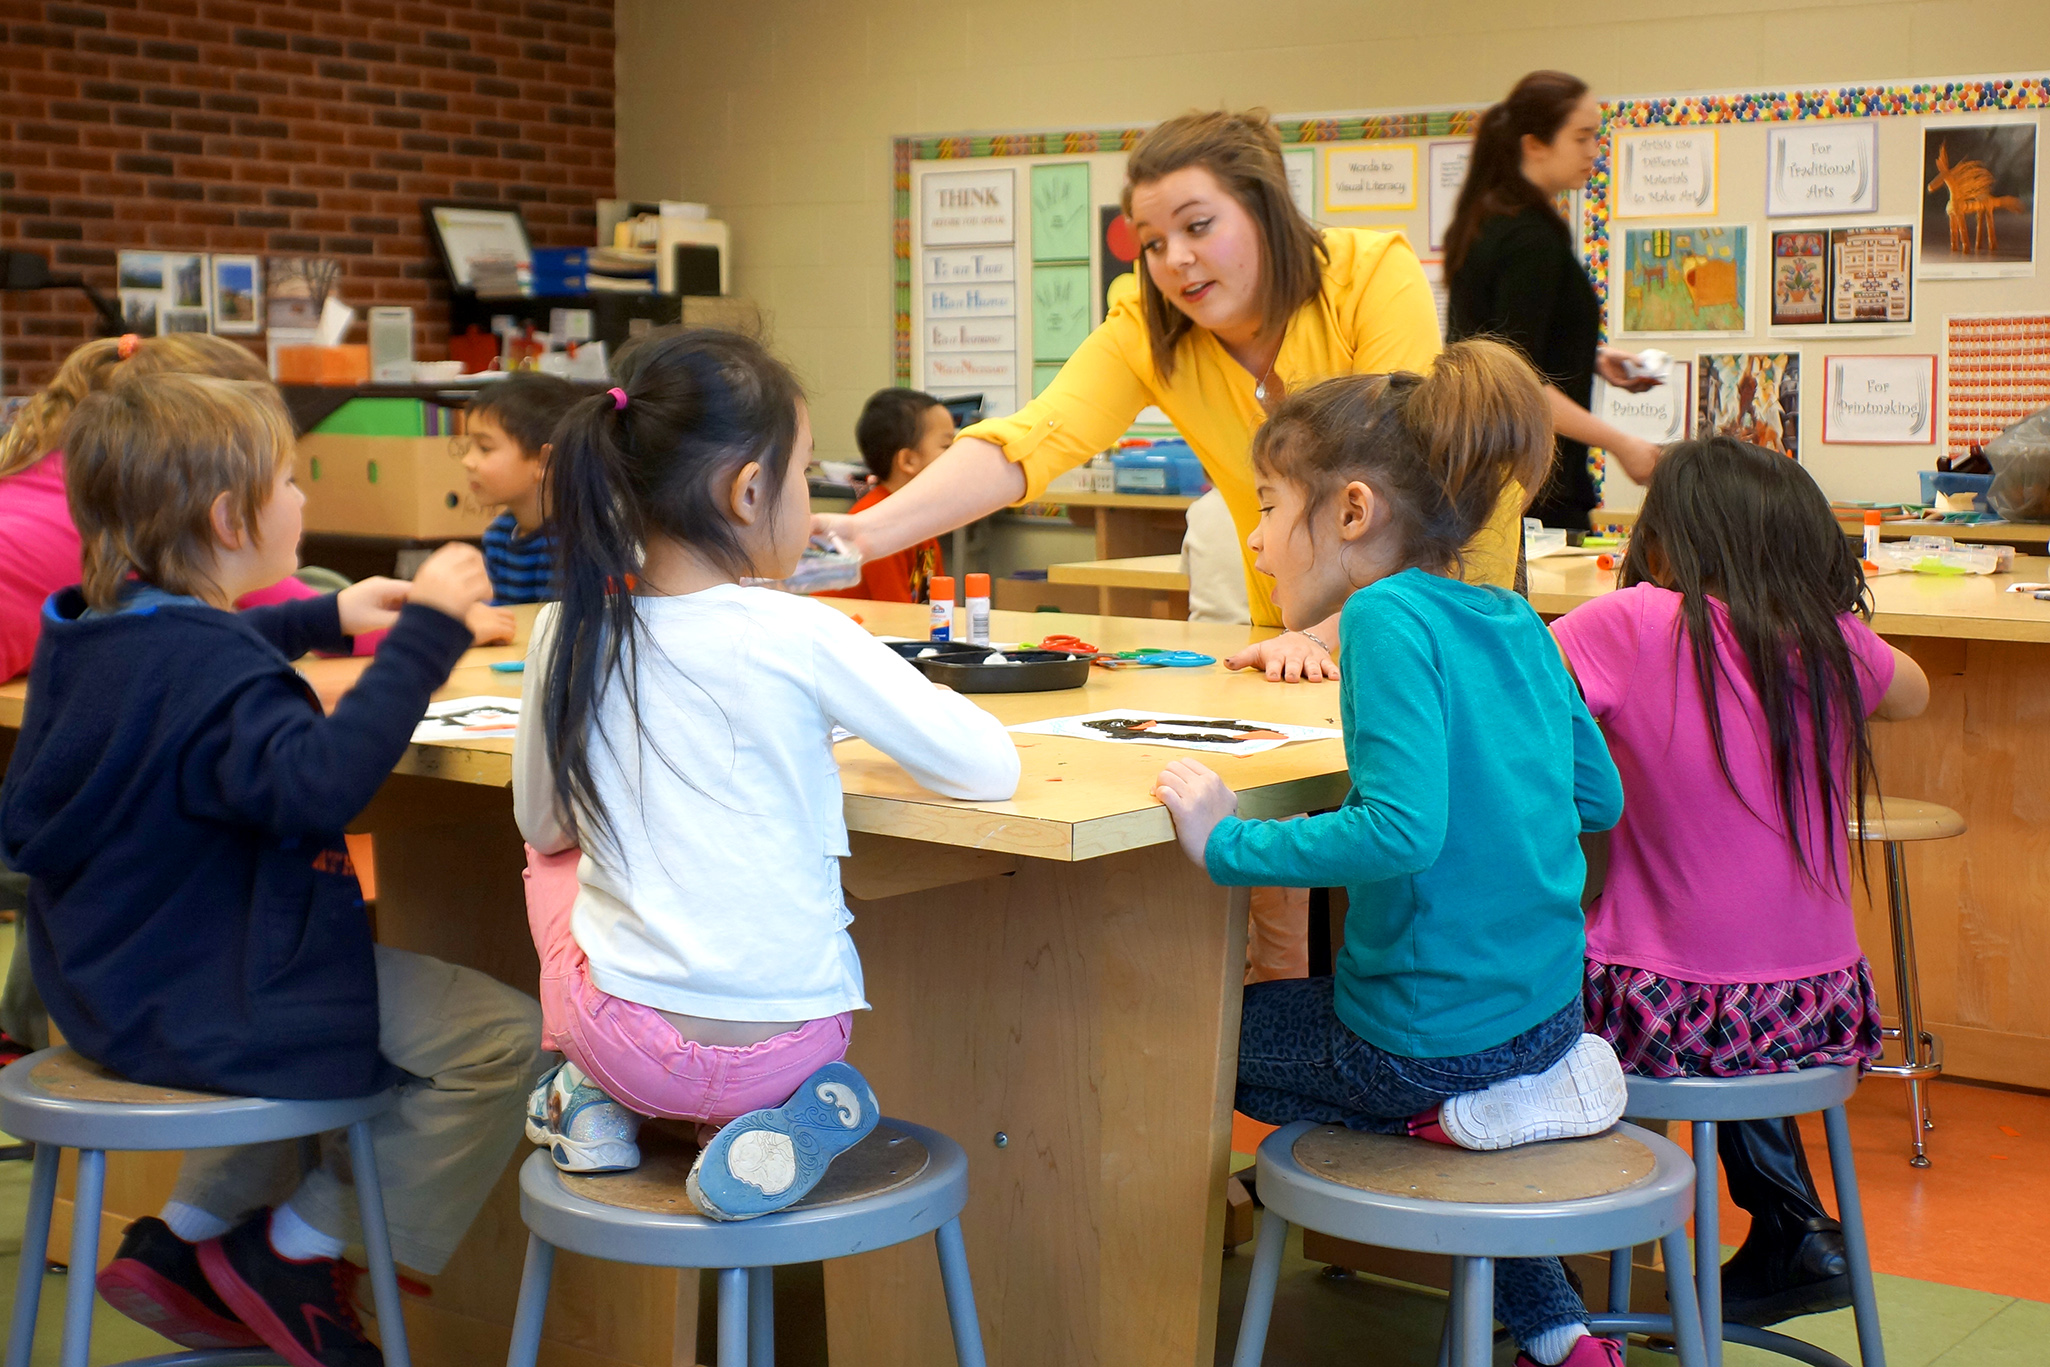 Pre-service teacher Olivia Revolinski gains additional hands-on experience through community art teaching internships.